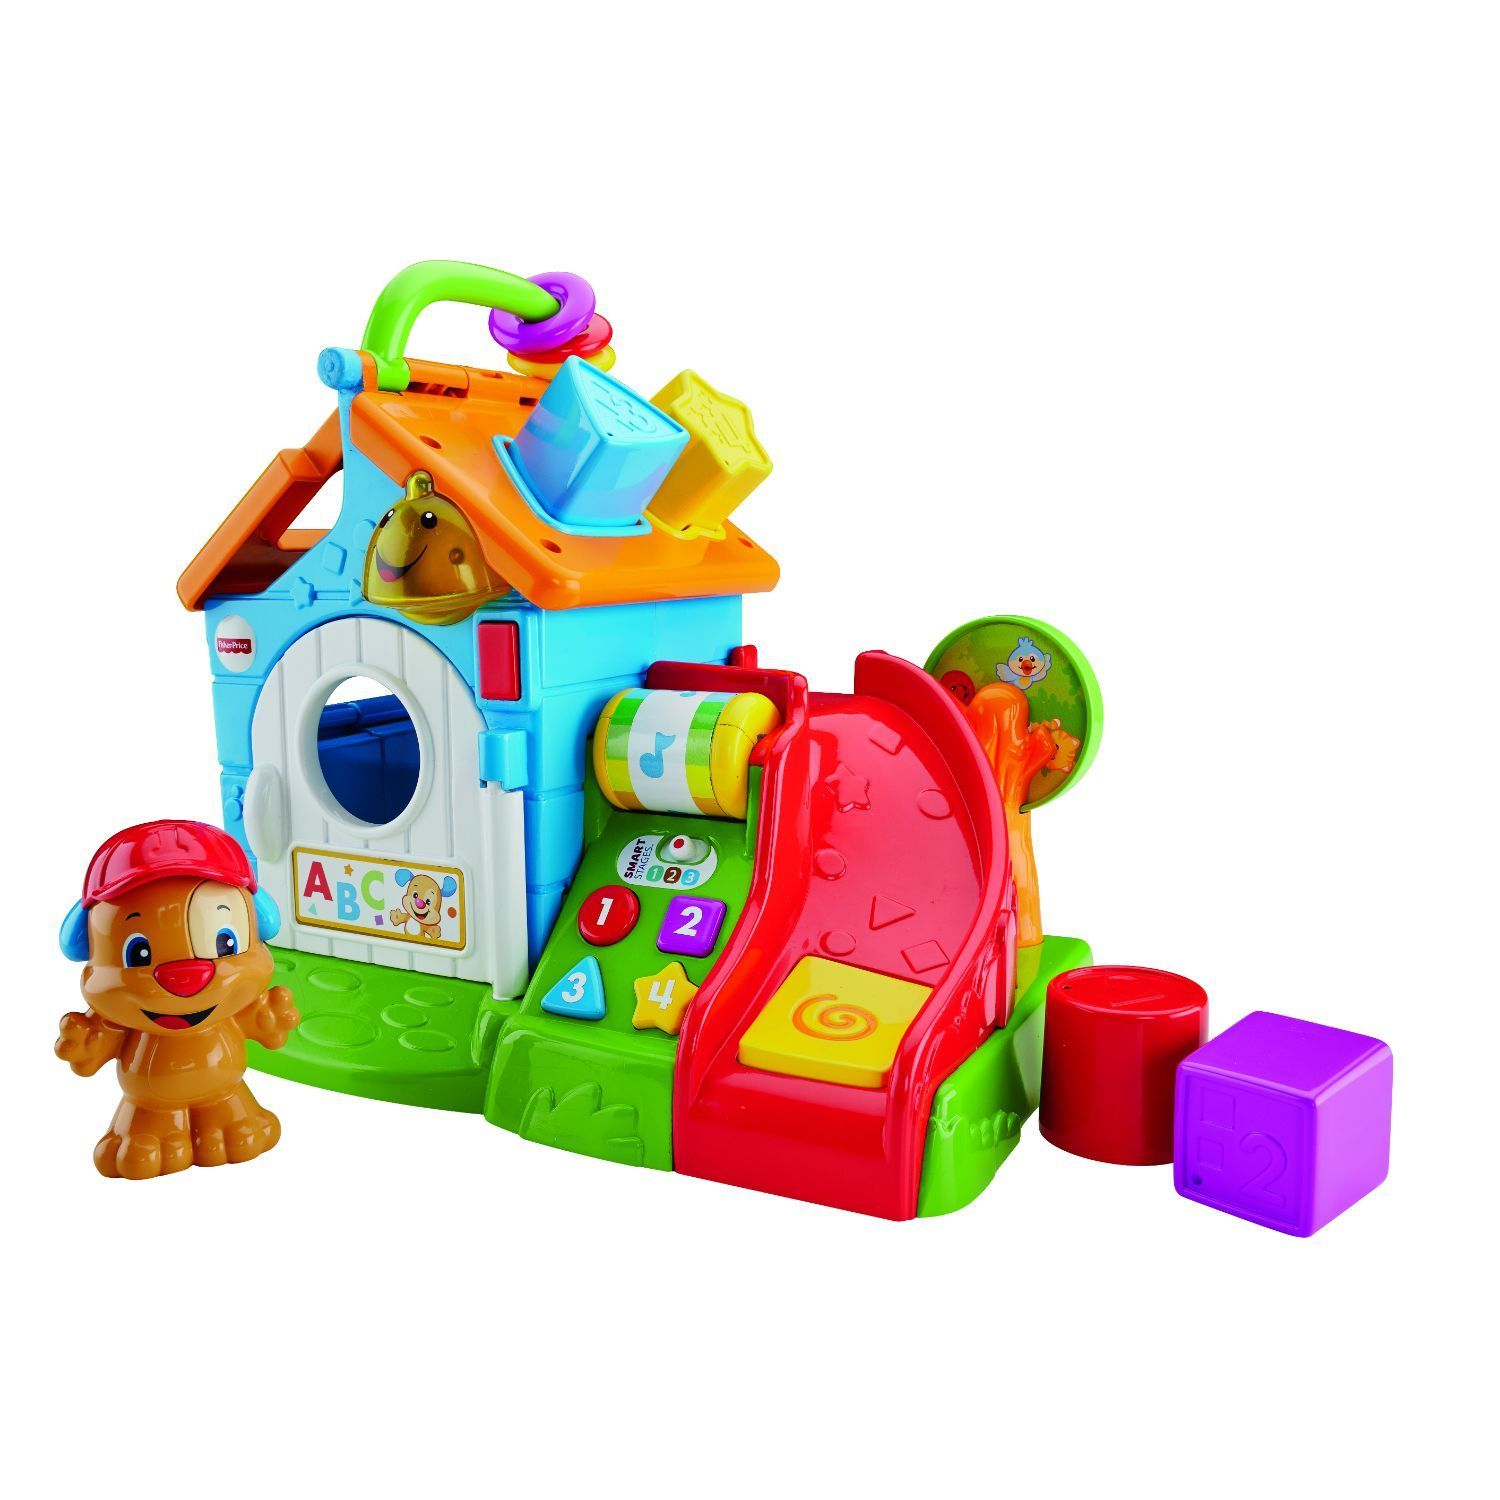 Shop Fisher Price Laugh And Learn Smart Stages Activity Playhouse Phone Free Shipping Today 12360627